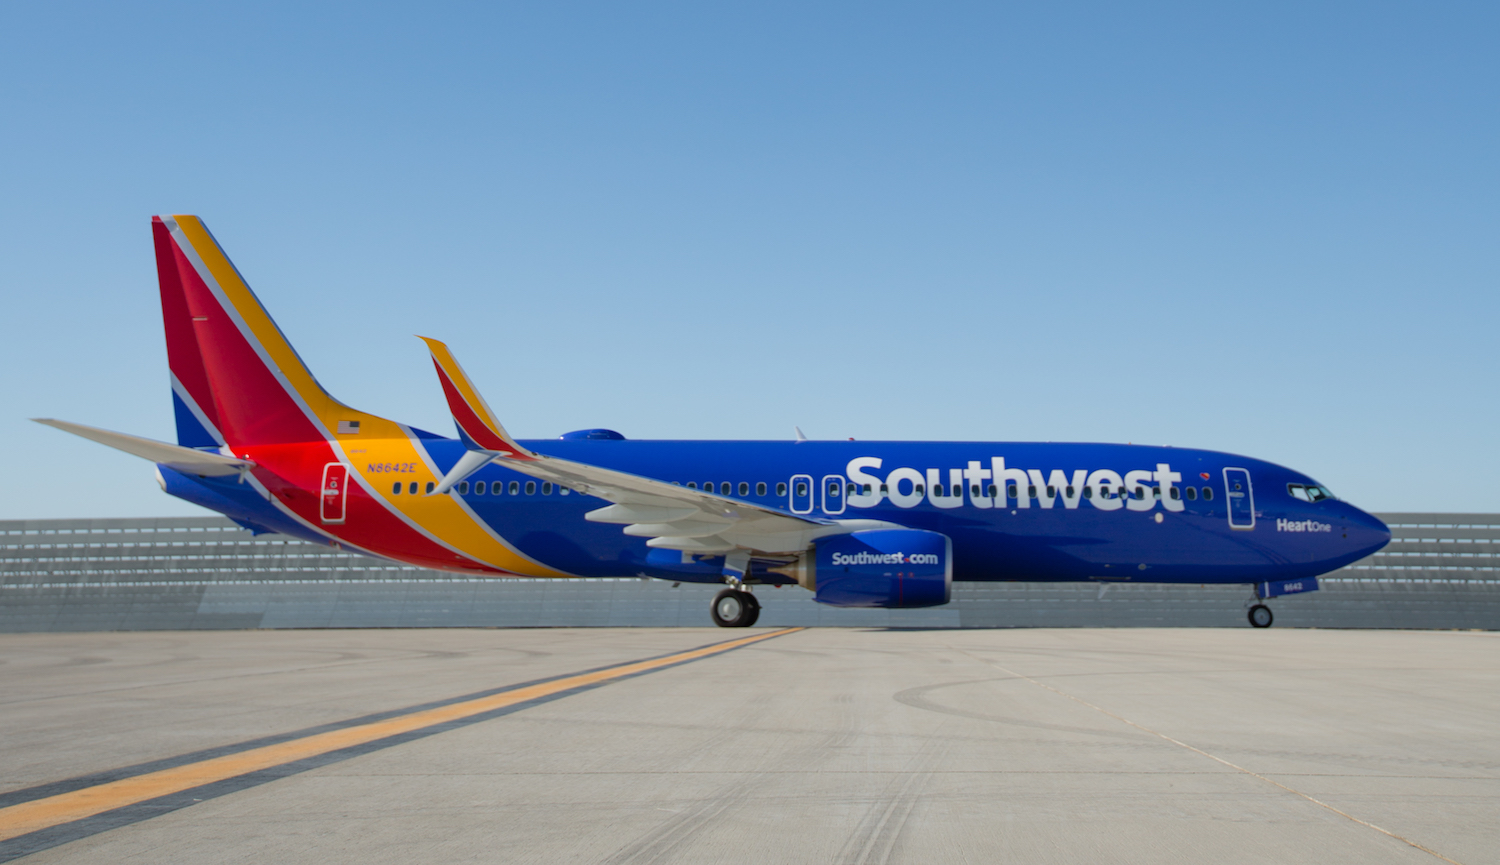 Southwest has a track record of removing Muslim passengers from flights without good reason. Image: Southwest